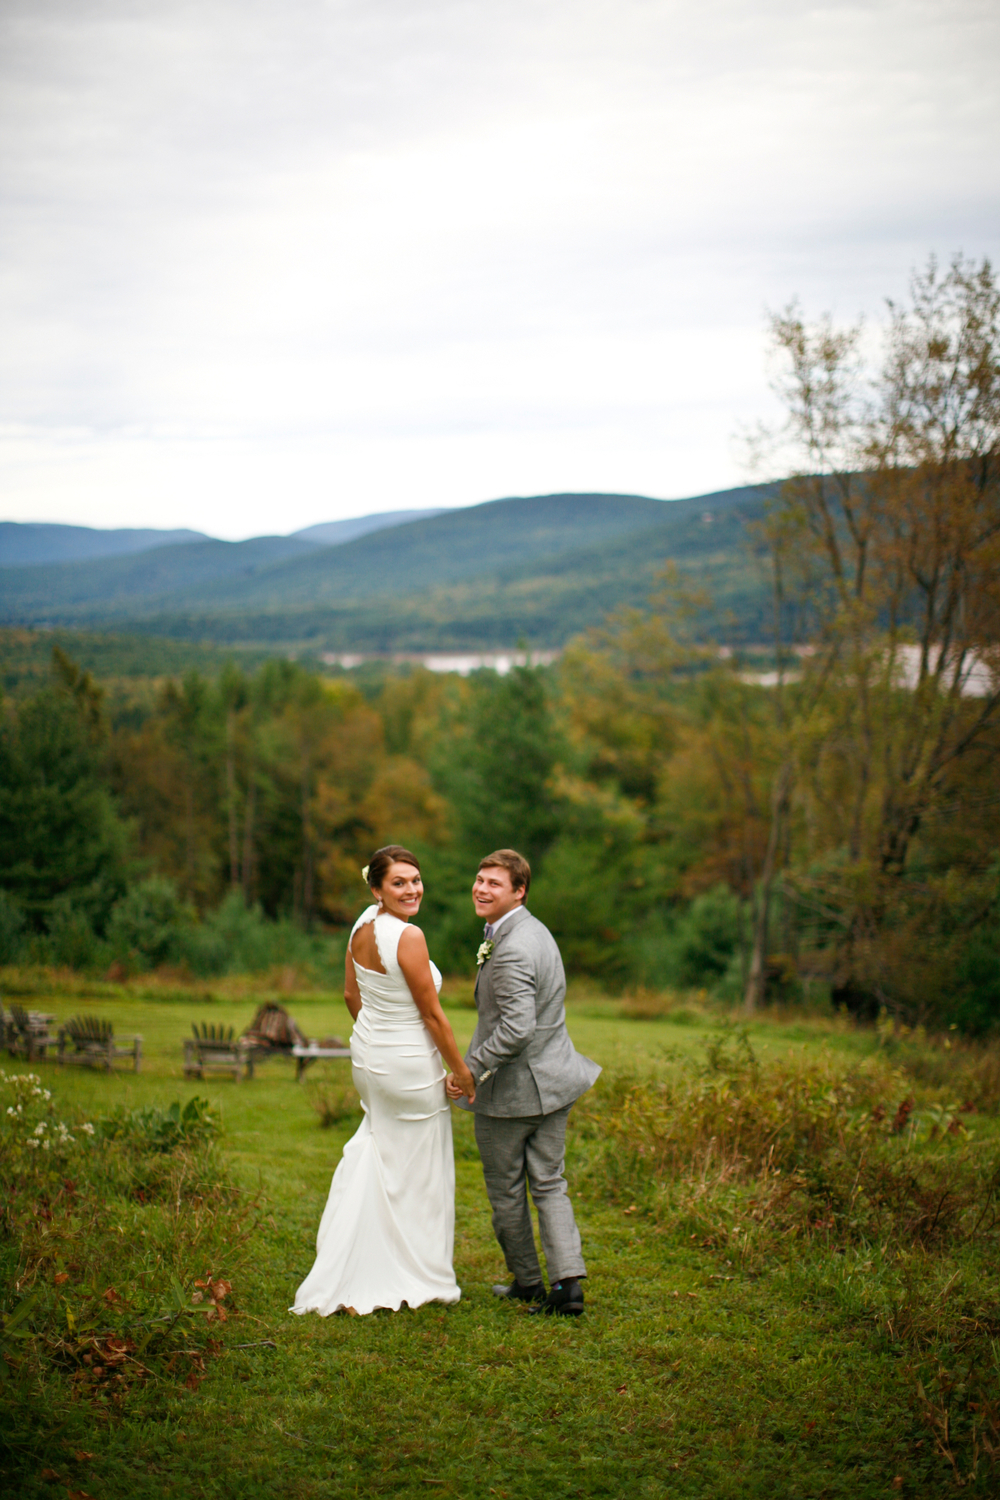 Heather + Ryan_Betsi Ewing Studio_049.JPG